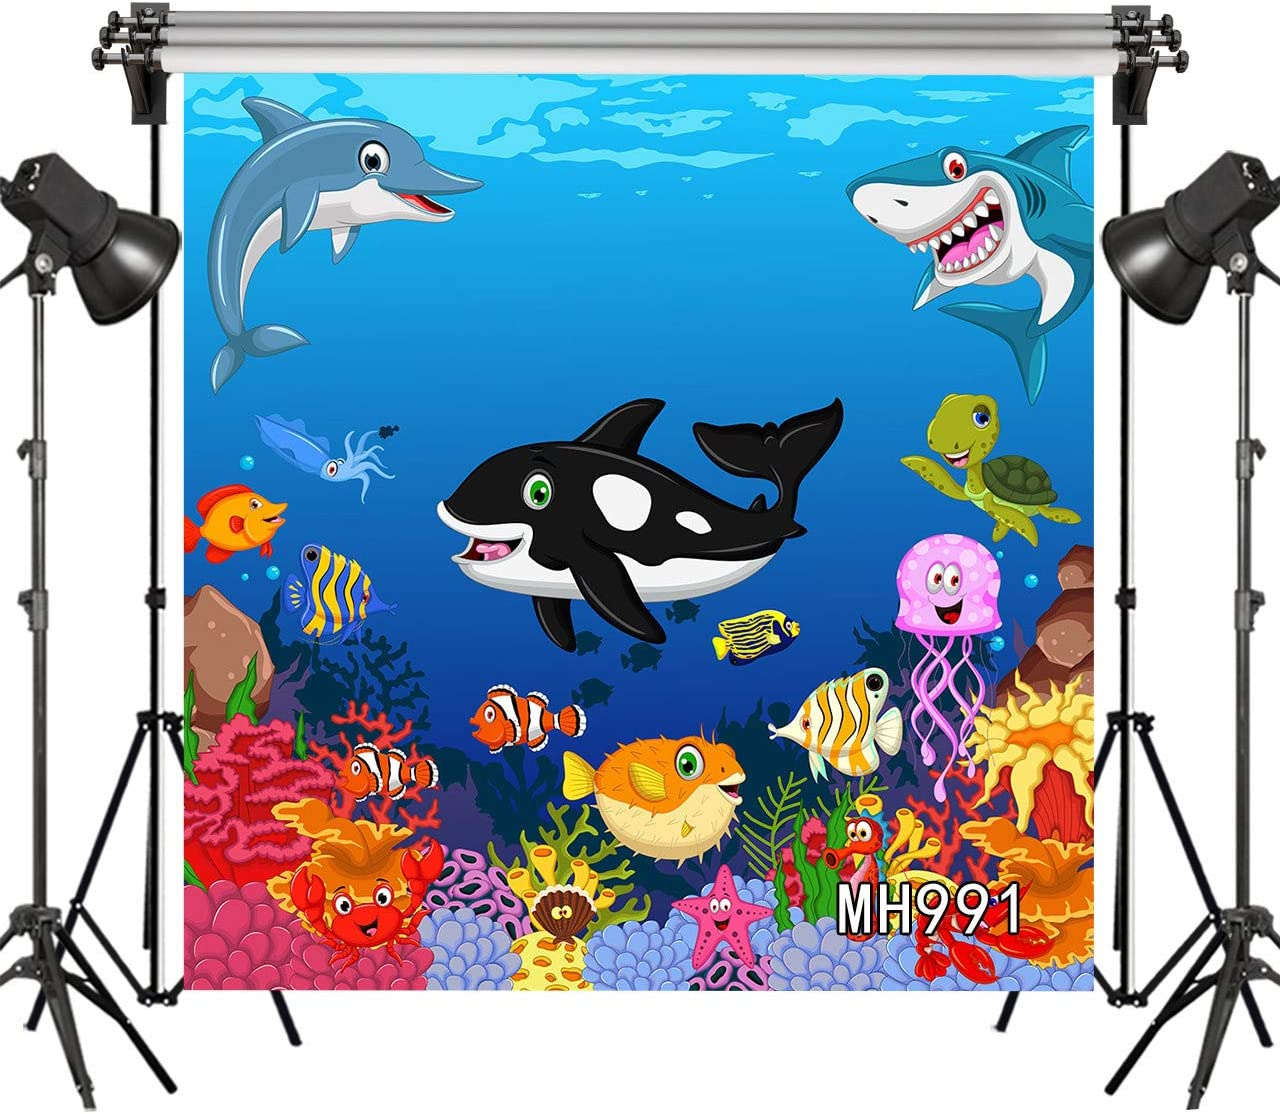 8x10 FT Photo Backdrops,Two Scuba Divers and Giant Fish Silhouette Swimming Close to The Reef Monochrome Background for Kid Baby Boy Girl Artistic Portrait Photo Shoot Studio Props Video Drape Vinyl